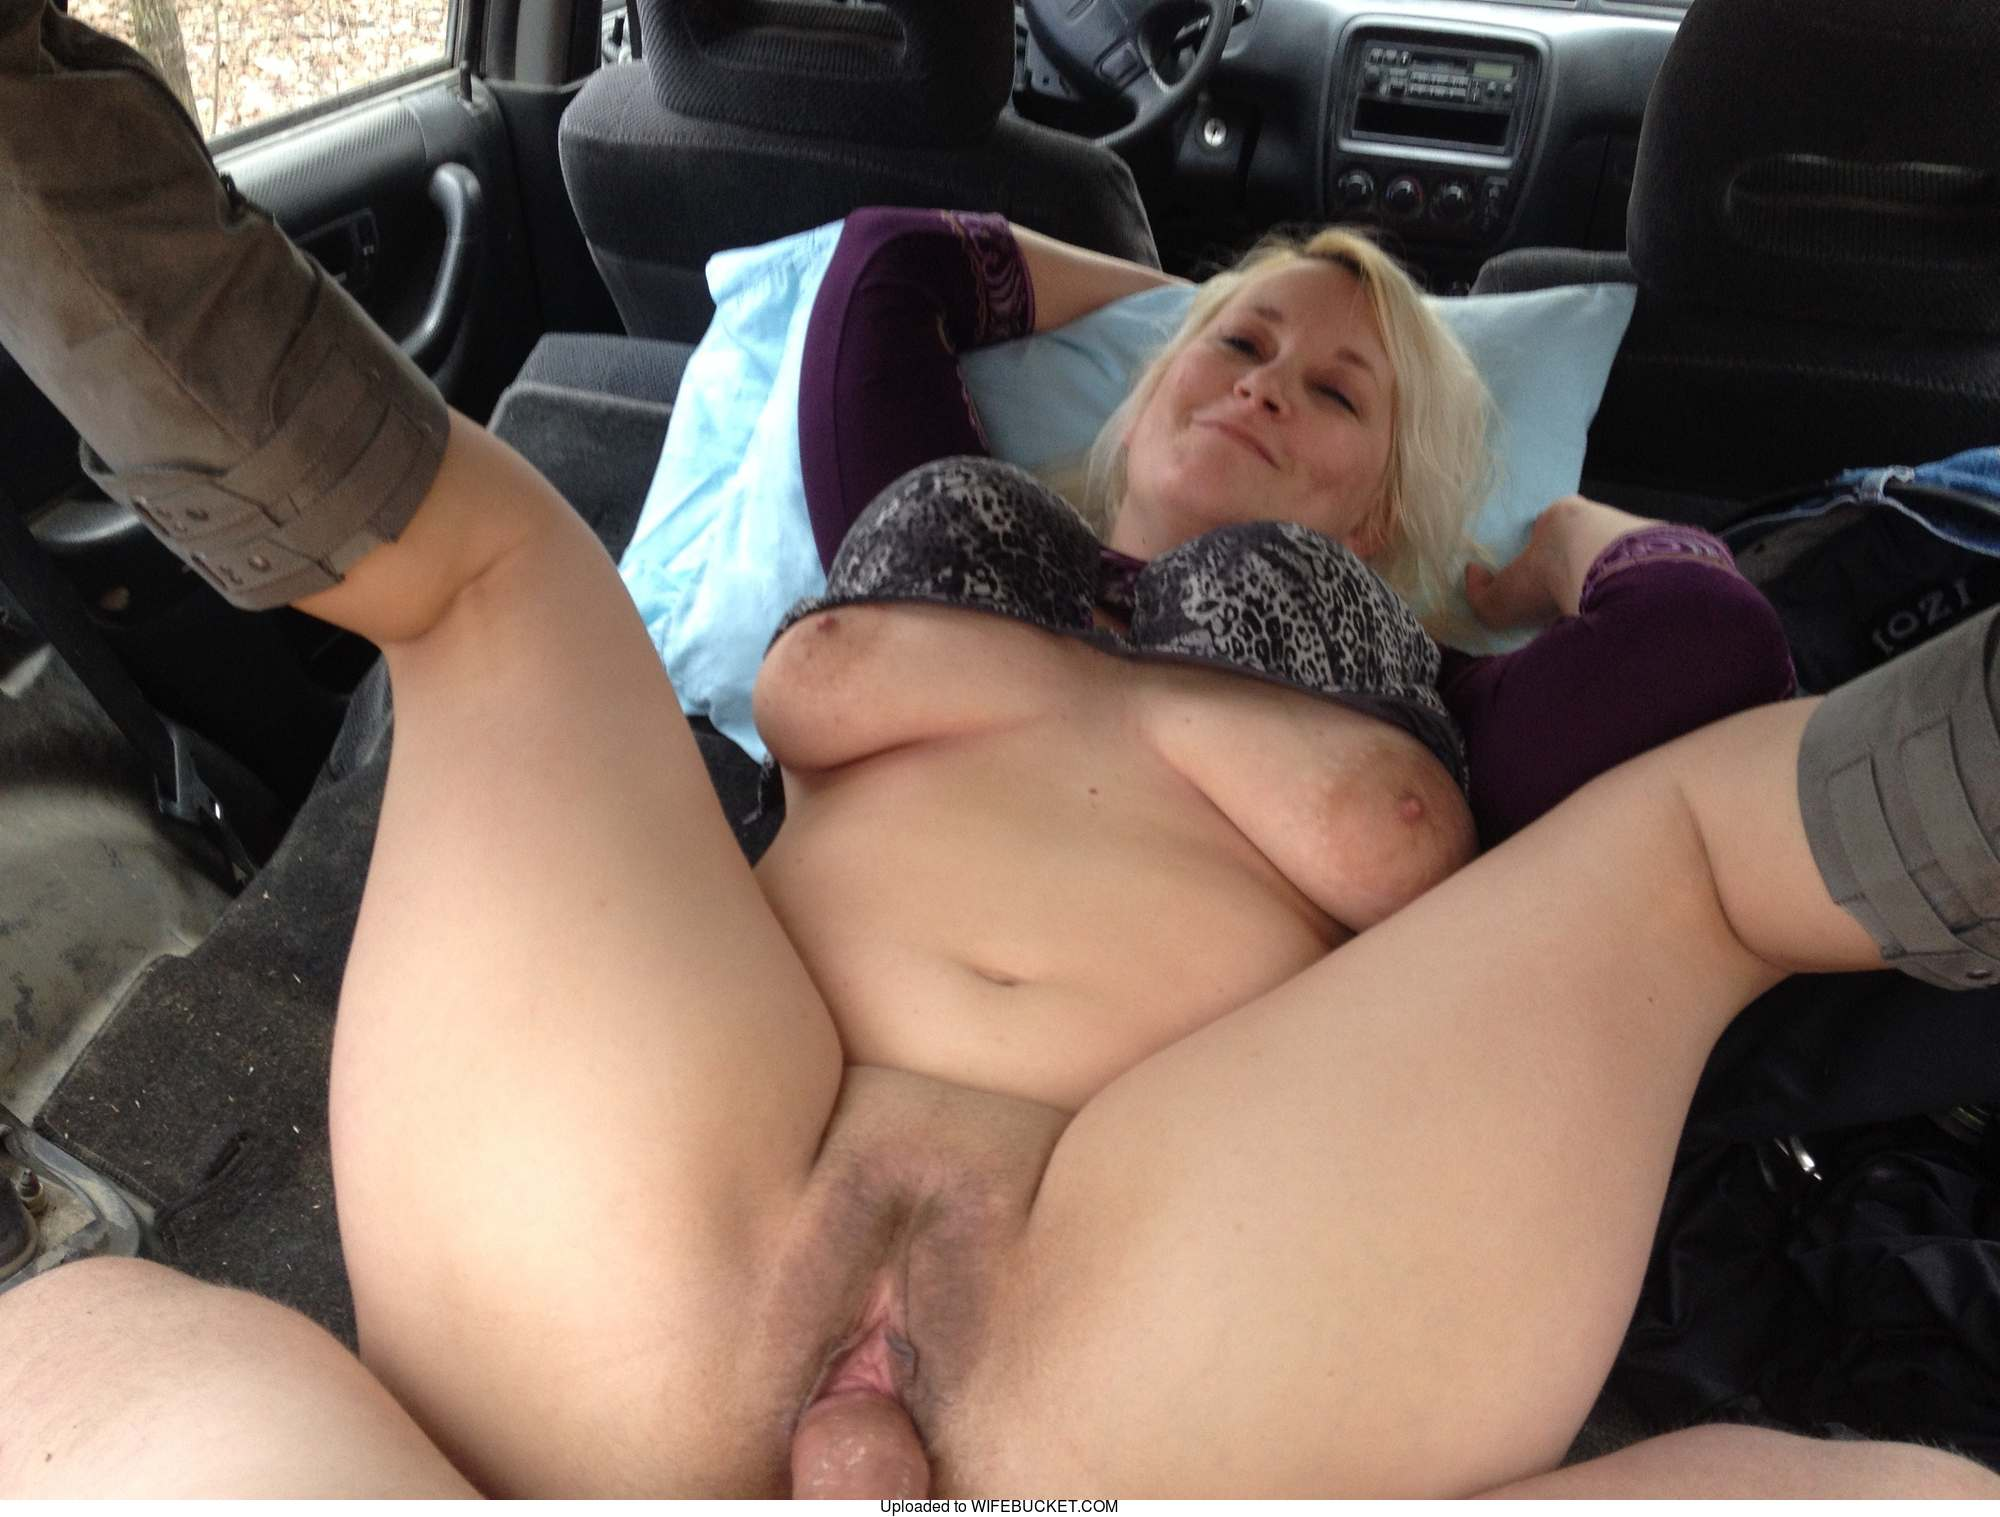 Real Amateur Sex Archives  Wifebucket  Offical Milf Blog-9242